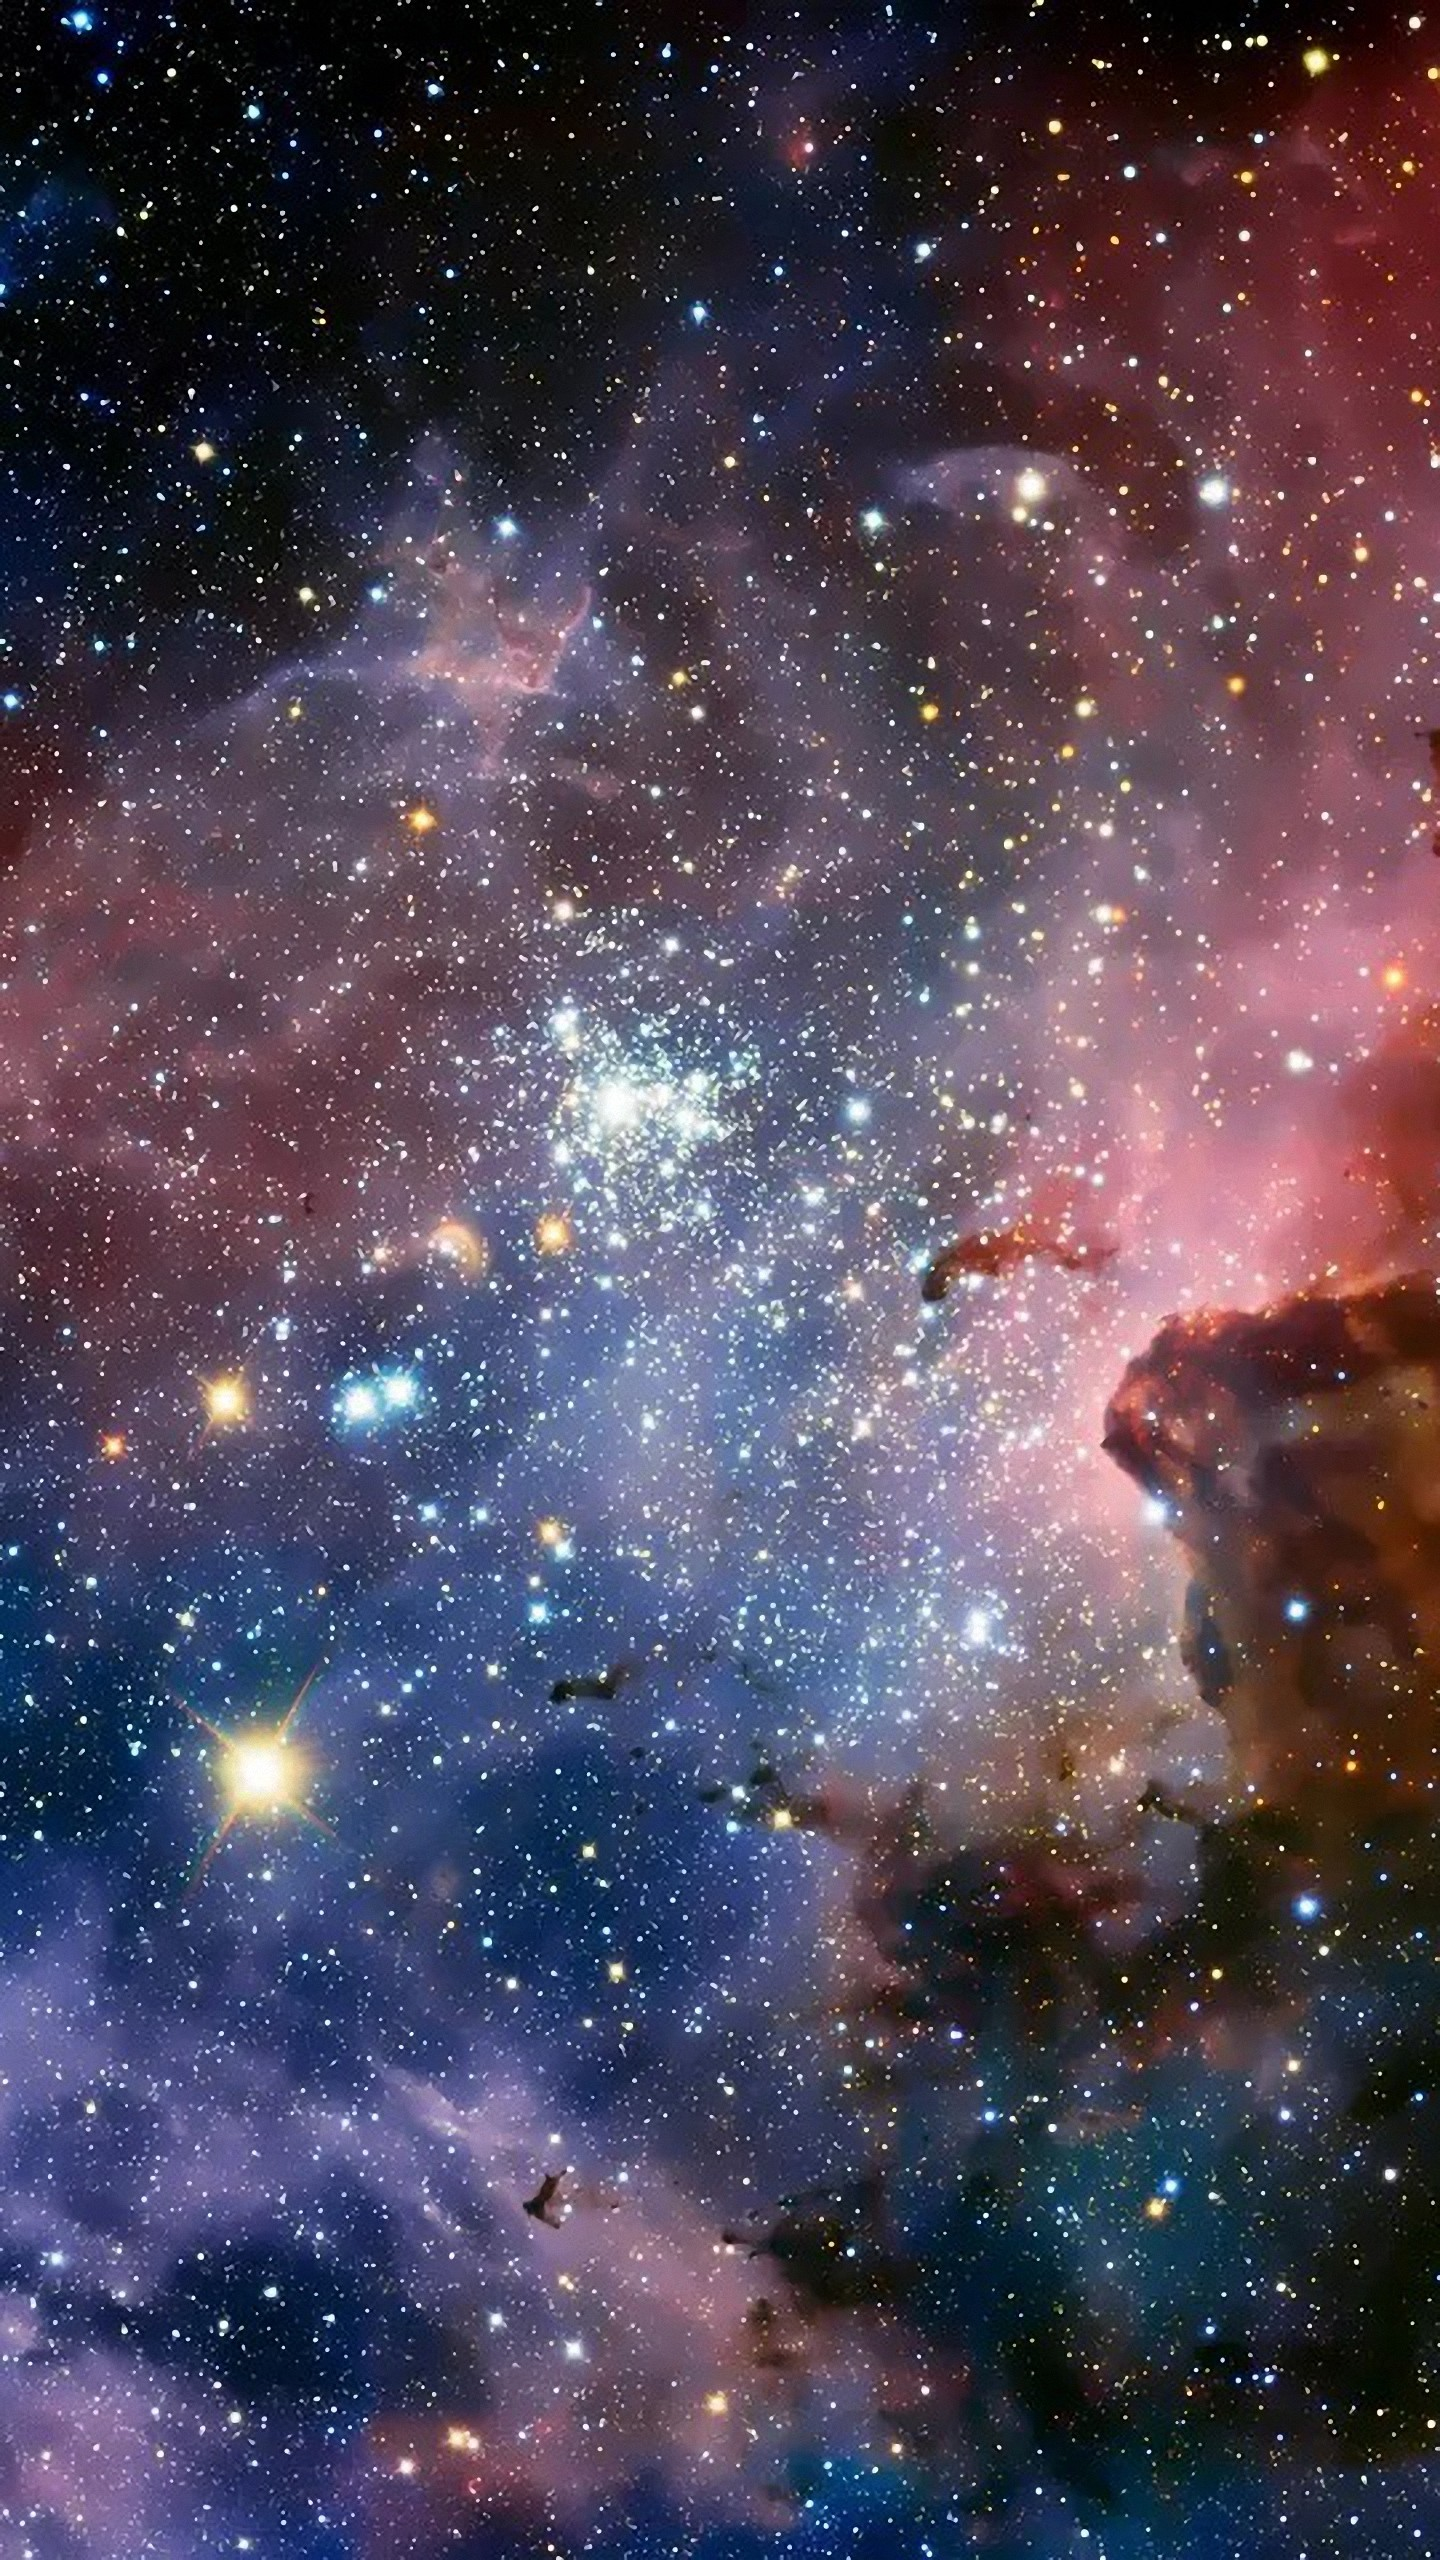 Hubble space wallpaper 60 images - Space wallpaper phone ...